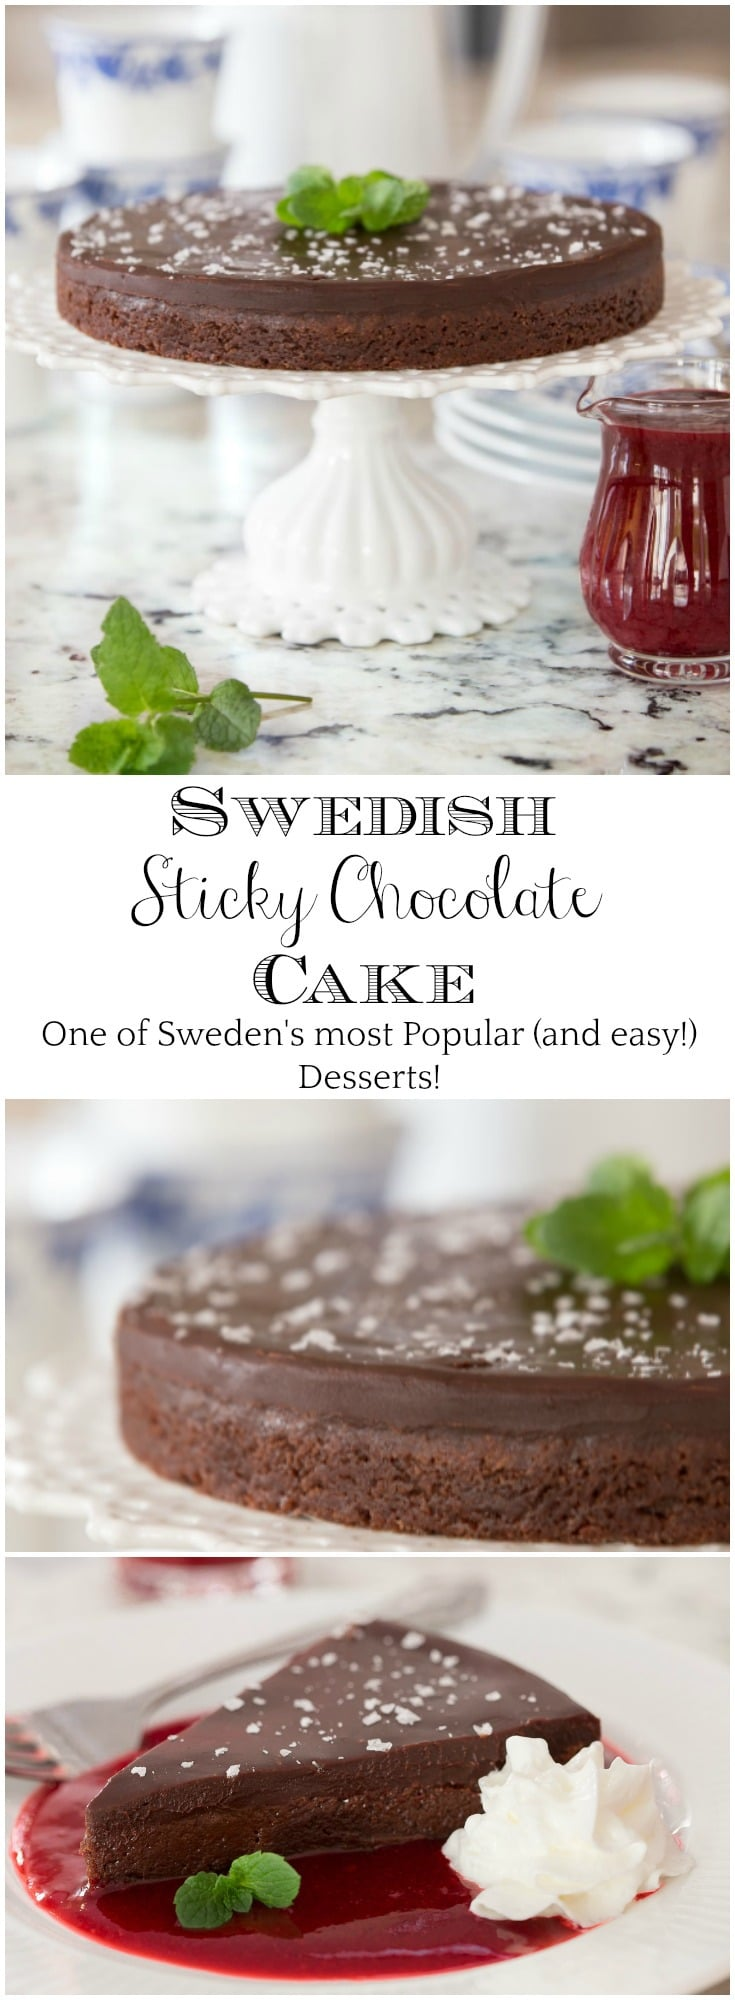 Kladdkaka (aka Swedish Sticky Chocolate Cake) is one of Sweden\'s most beloved (and easy!) desserts and every chocolate lover\'s dream come true! #swedishstickychocolatecake, #kladdkaka, #easychocolatedessert